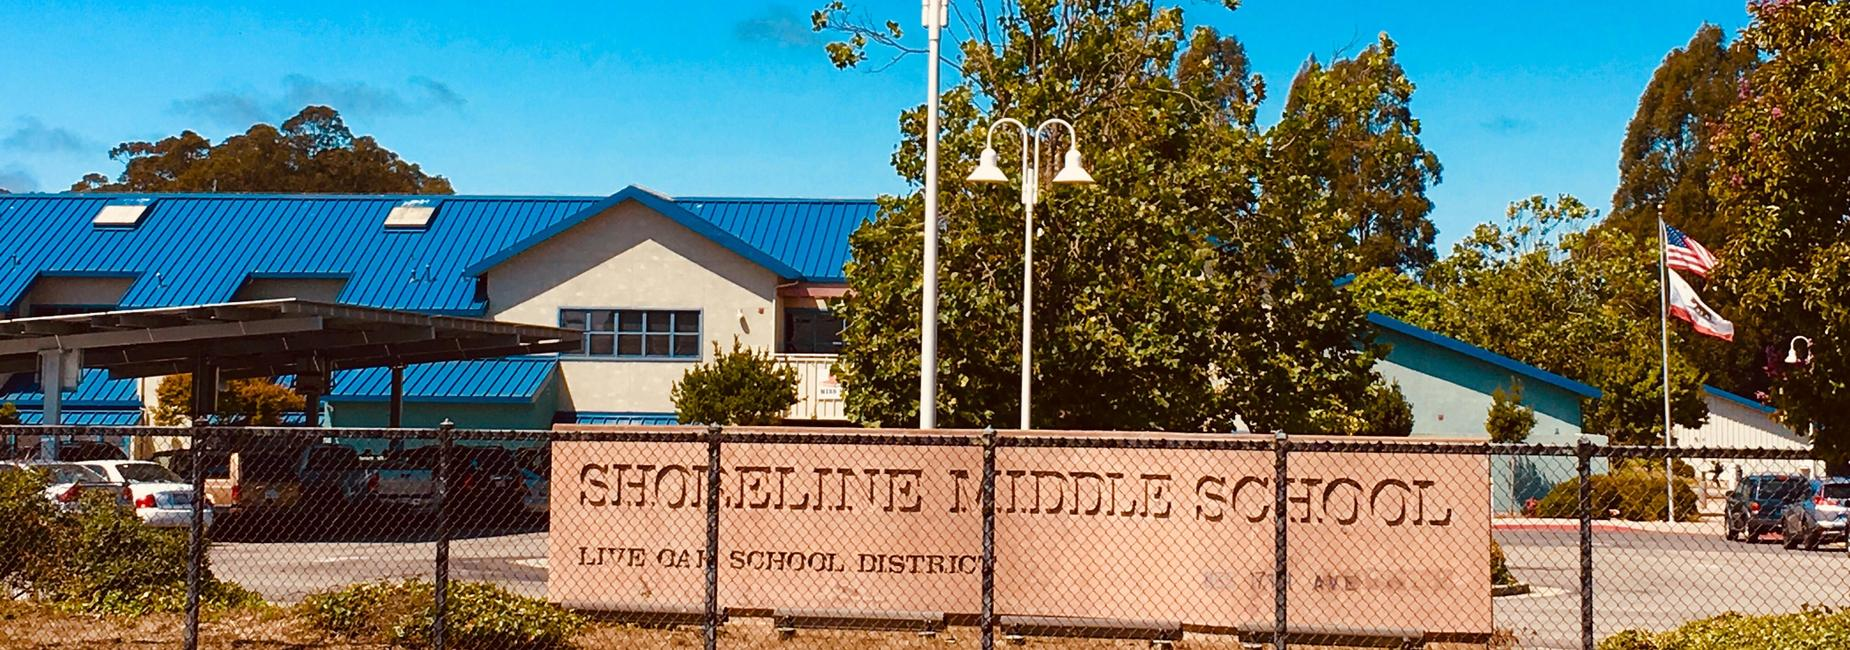 shoreline middle school